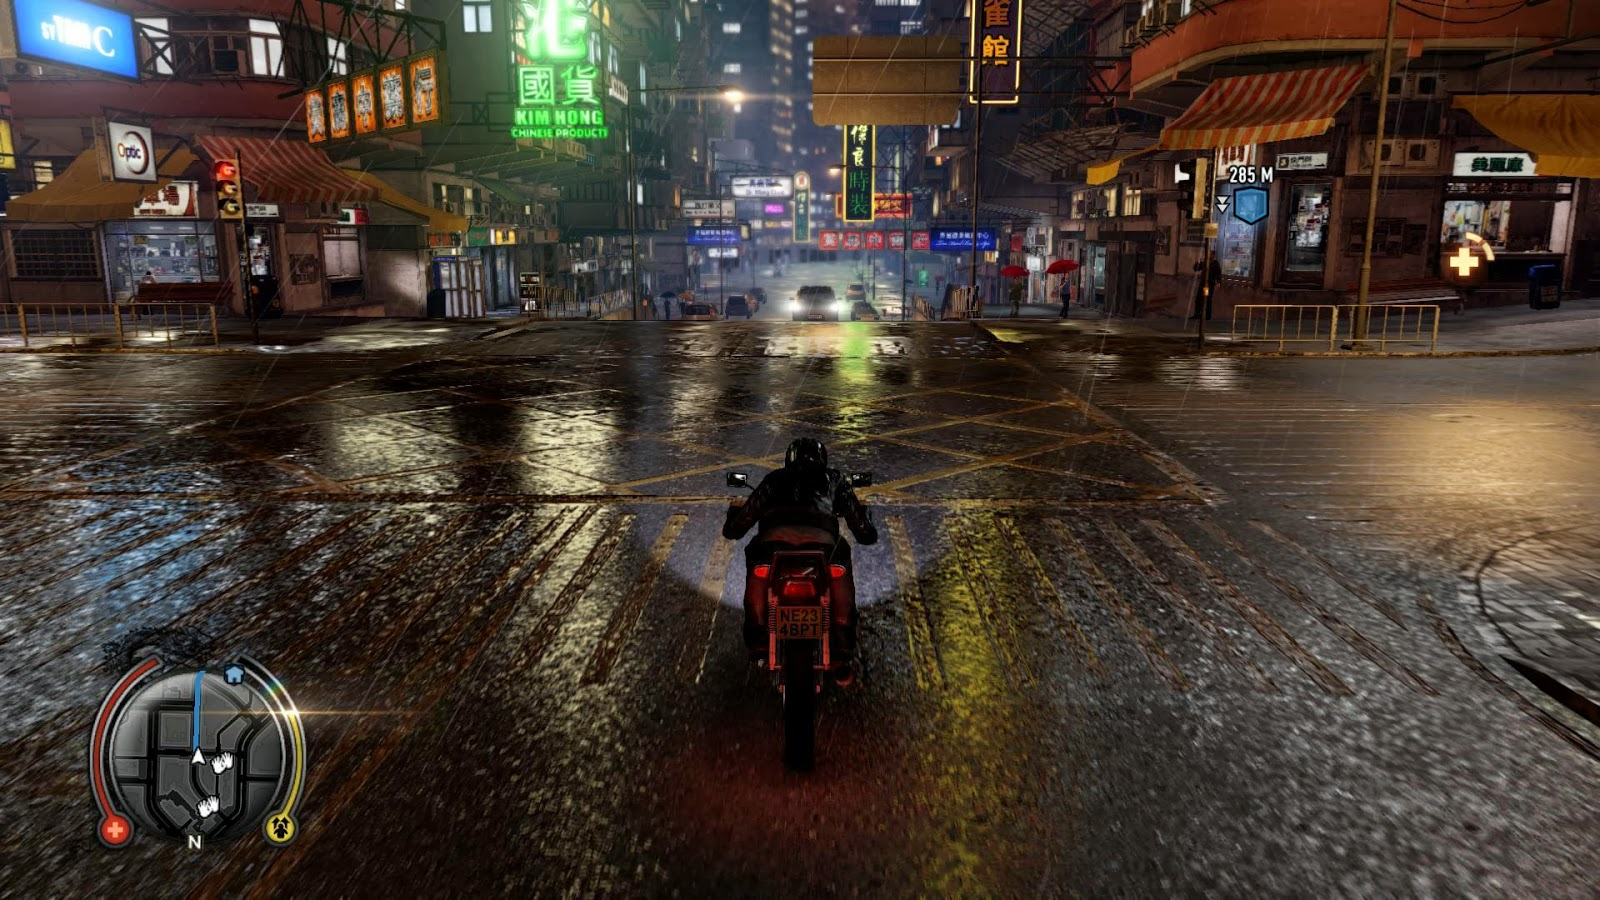 A Game For Free : Sleeping dogs game free download full version for pc